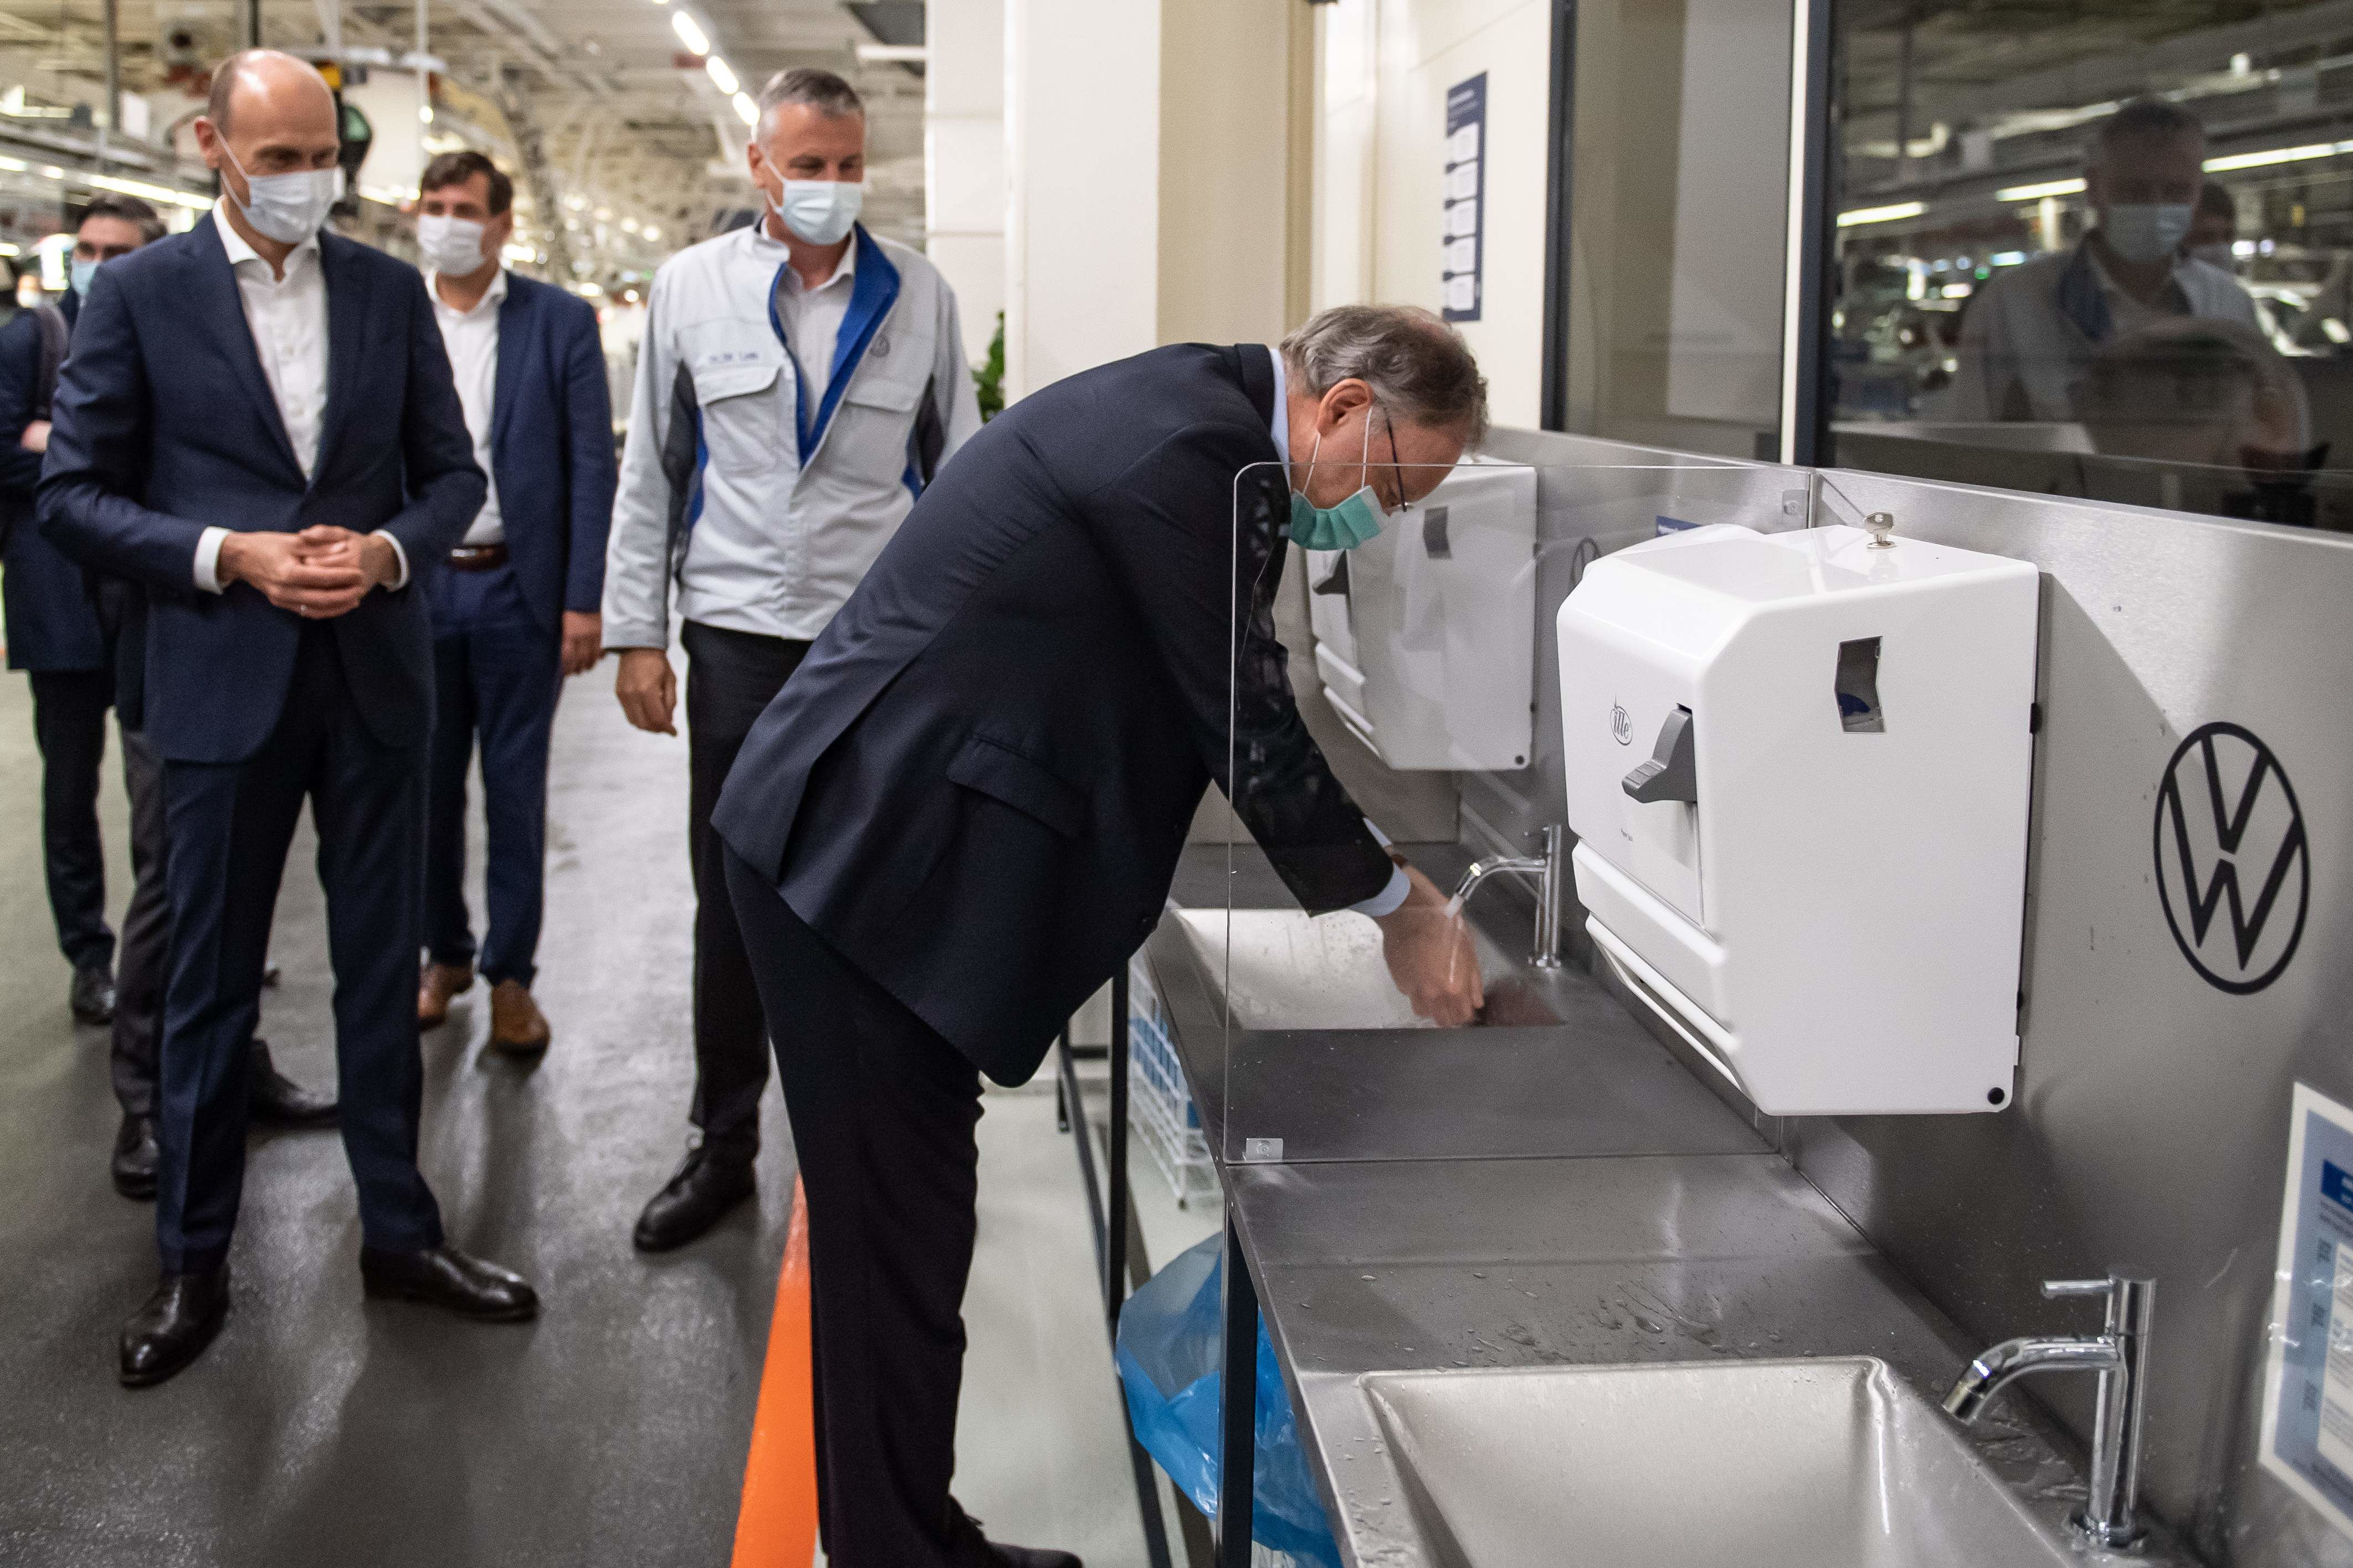 Lower Saxony's State Premier Stephan Weil (R) washes his hands as he visits the plant of Volkswagen Germany. In line with essential safety protocols, Volkswagen has installed wash basins where any visitor or worker can keep washing hands from time to time. (AFP)